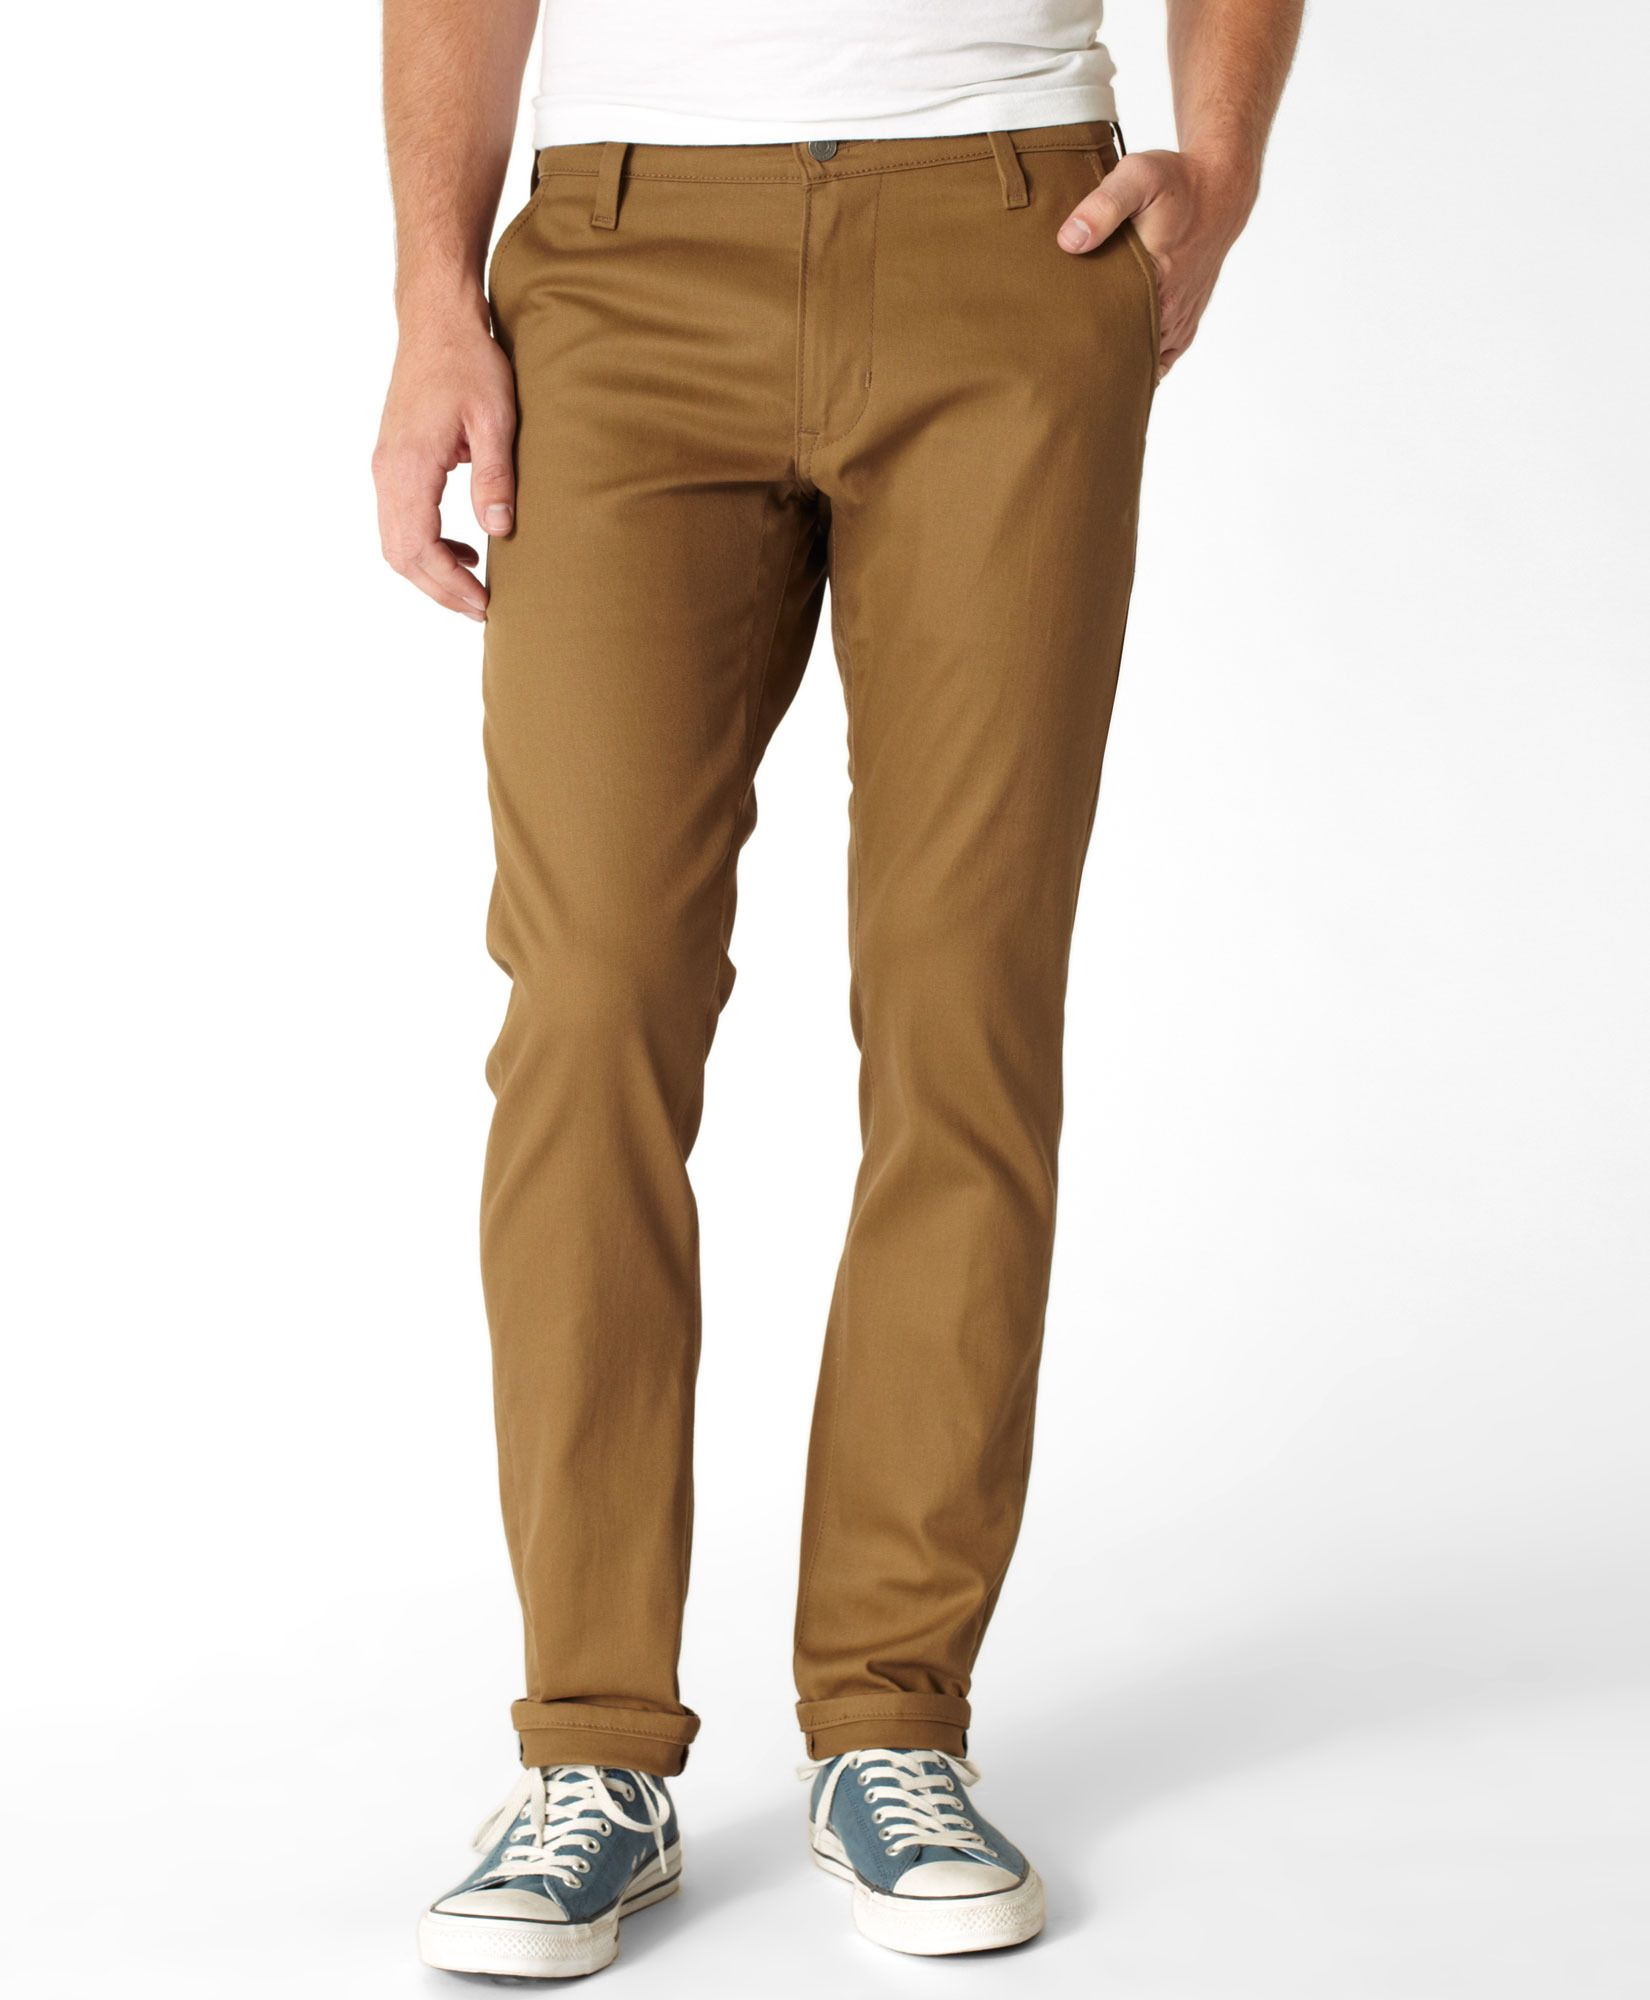 7d200d0a185 Levi's 511™ Commuter Trousers - Cougar - Trousers | My Wardrobe in ...